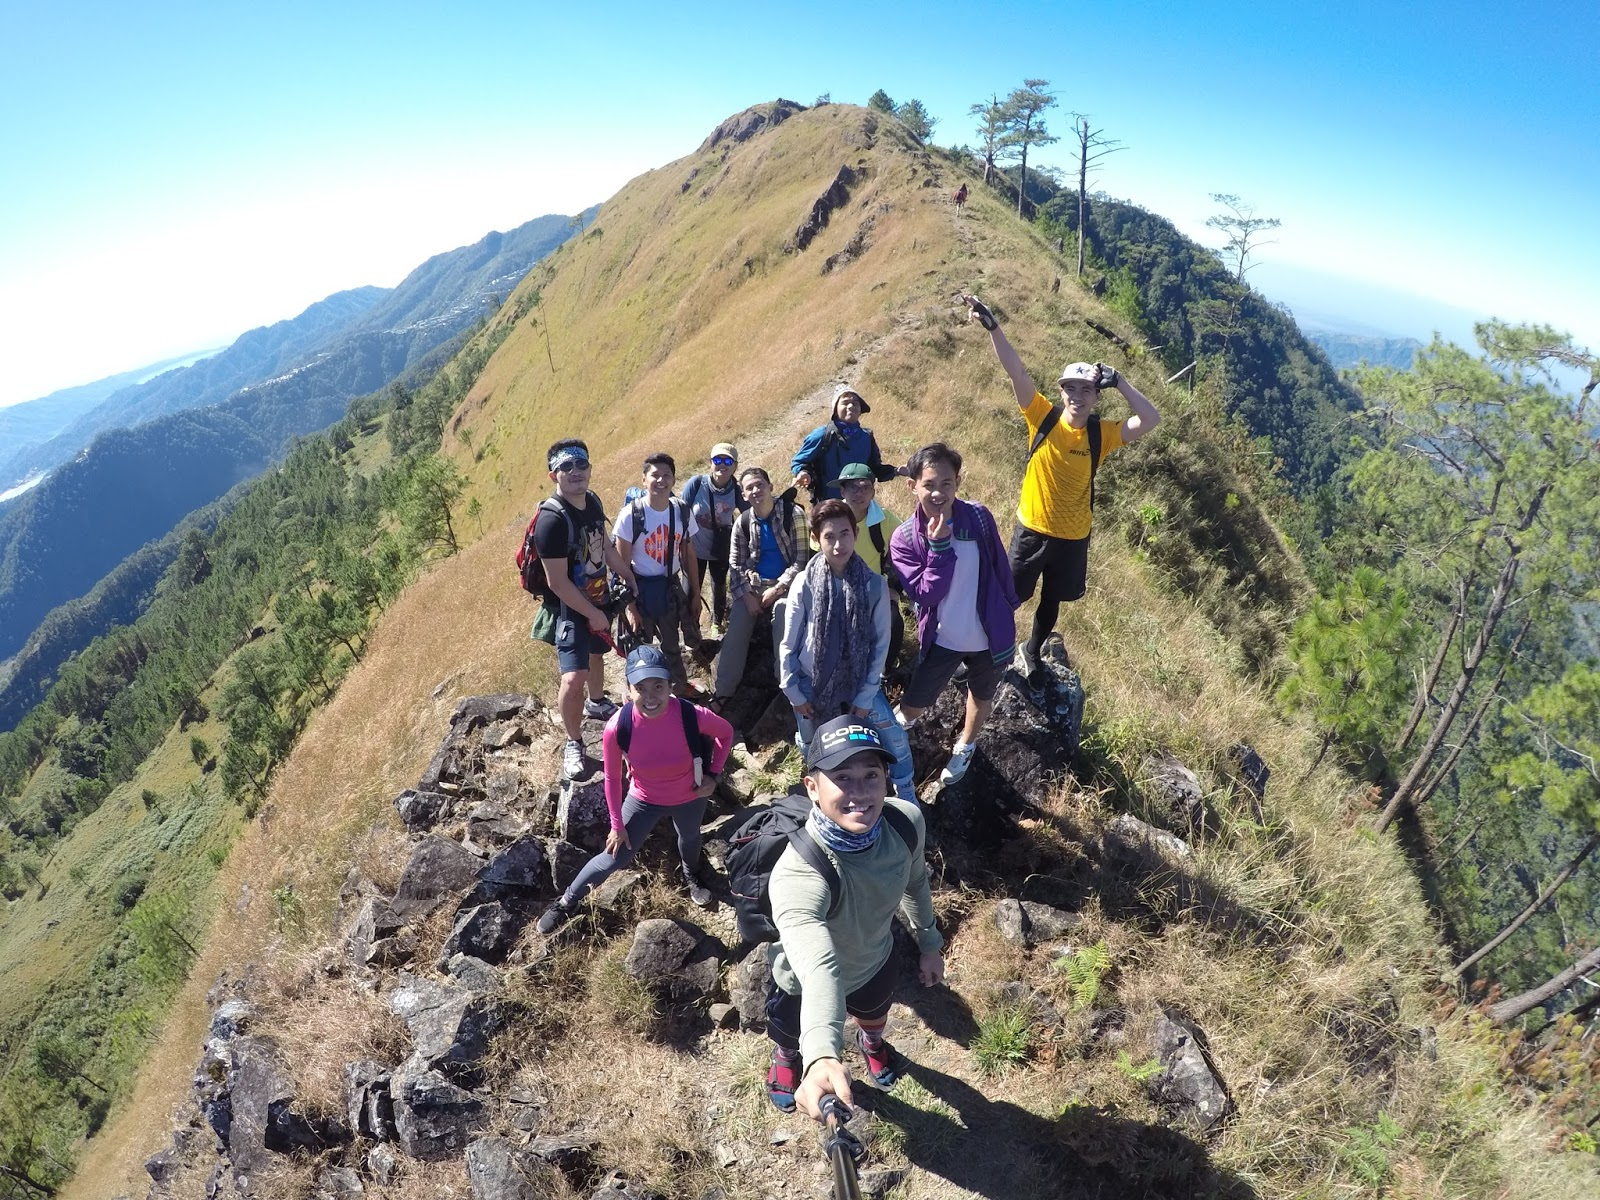 Mt. Ulap Trail Guide Itogon Benguet